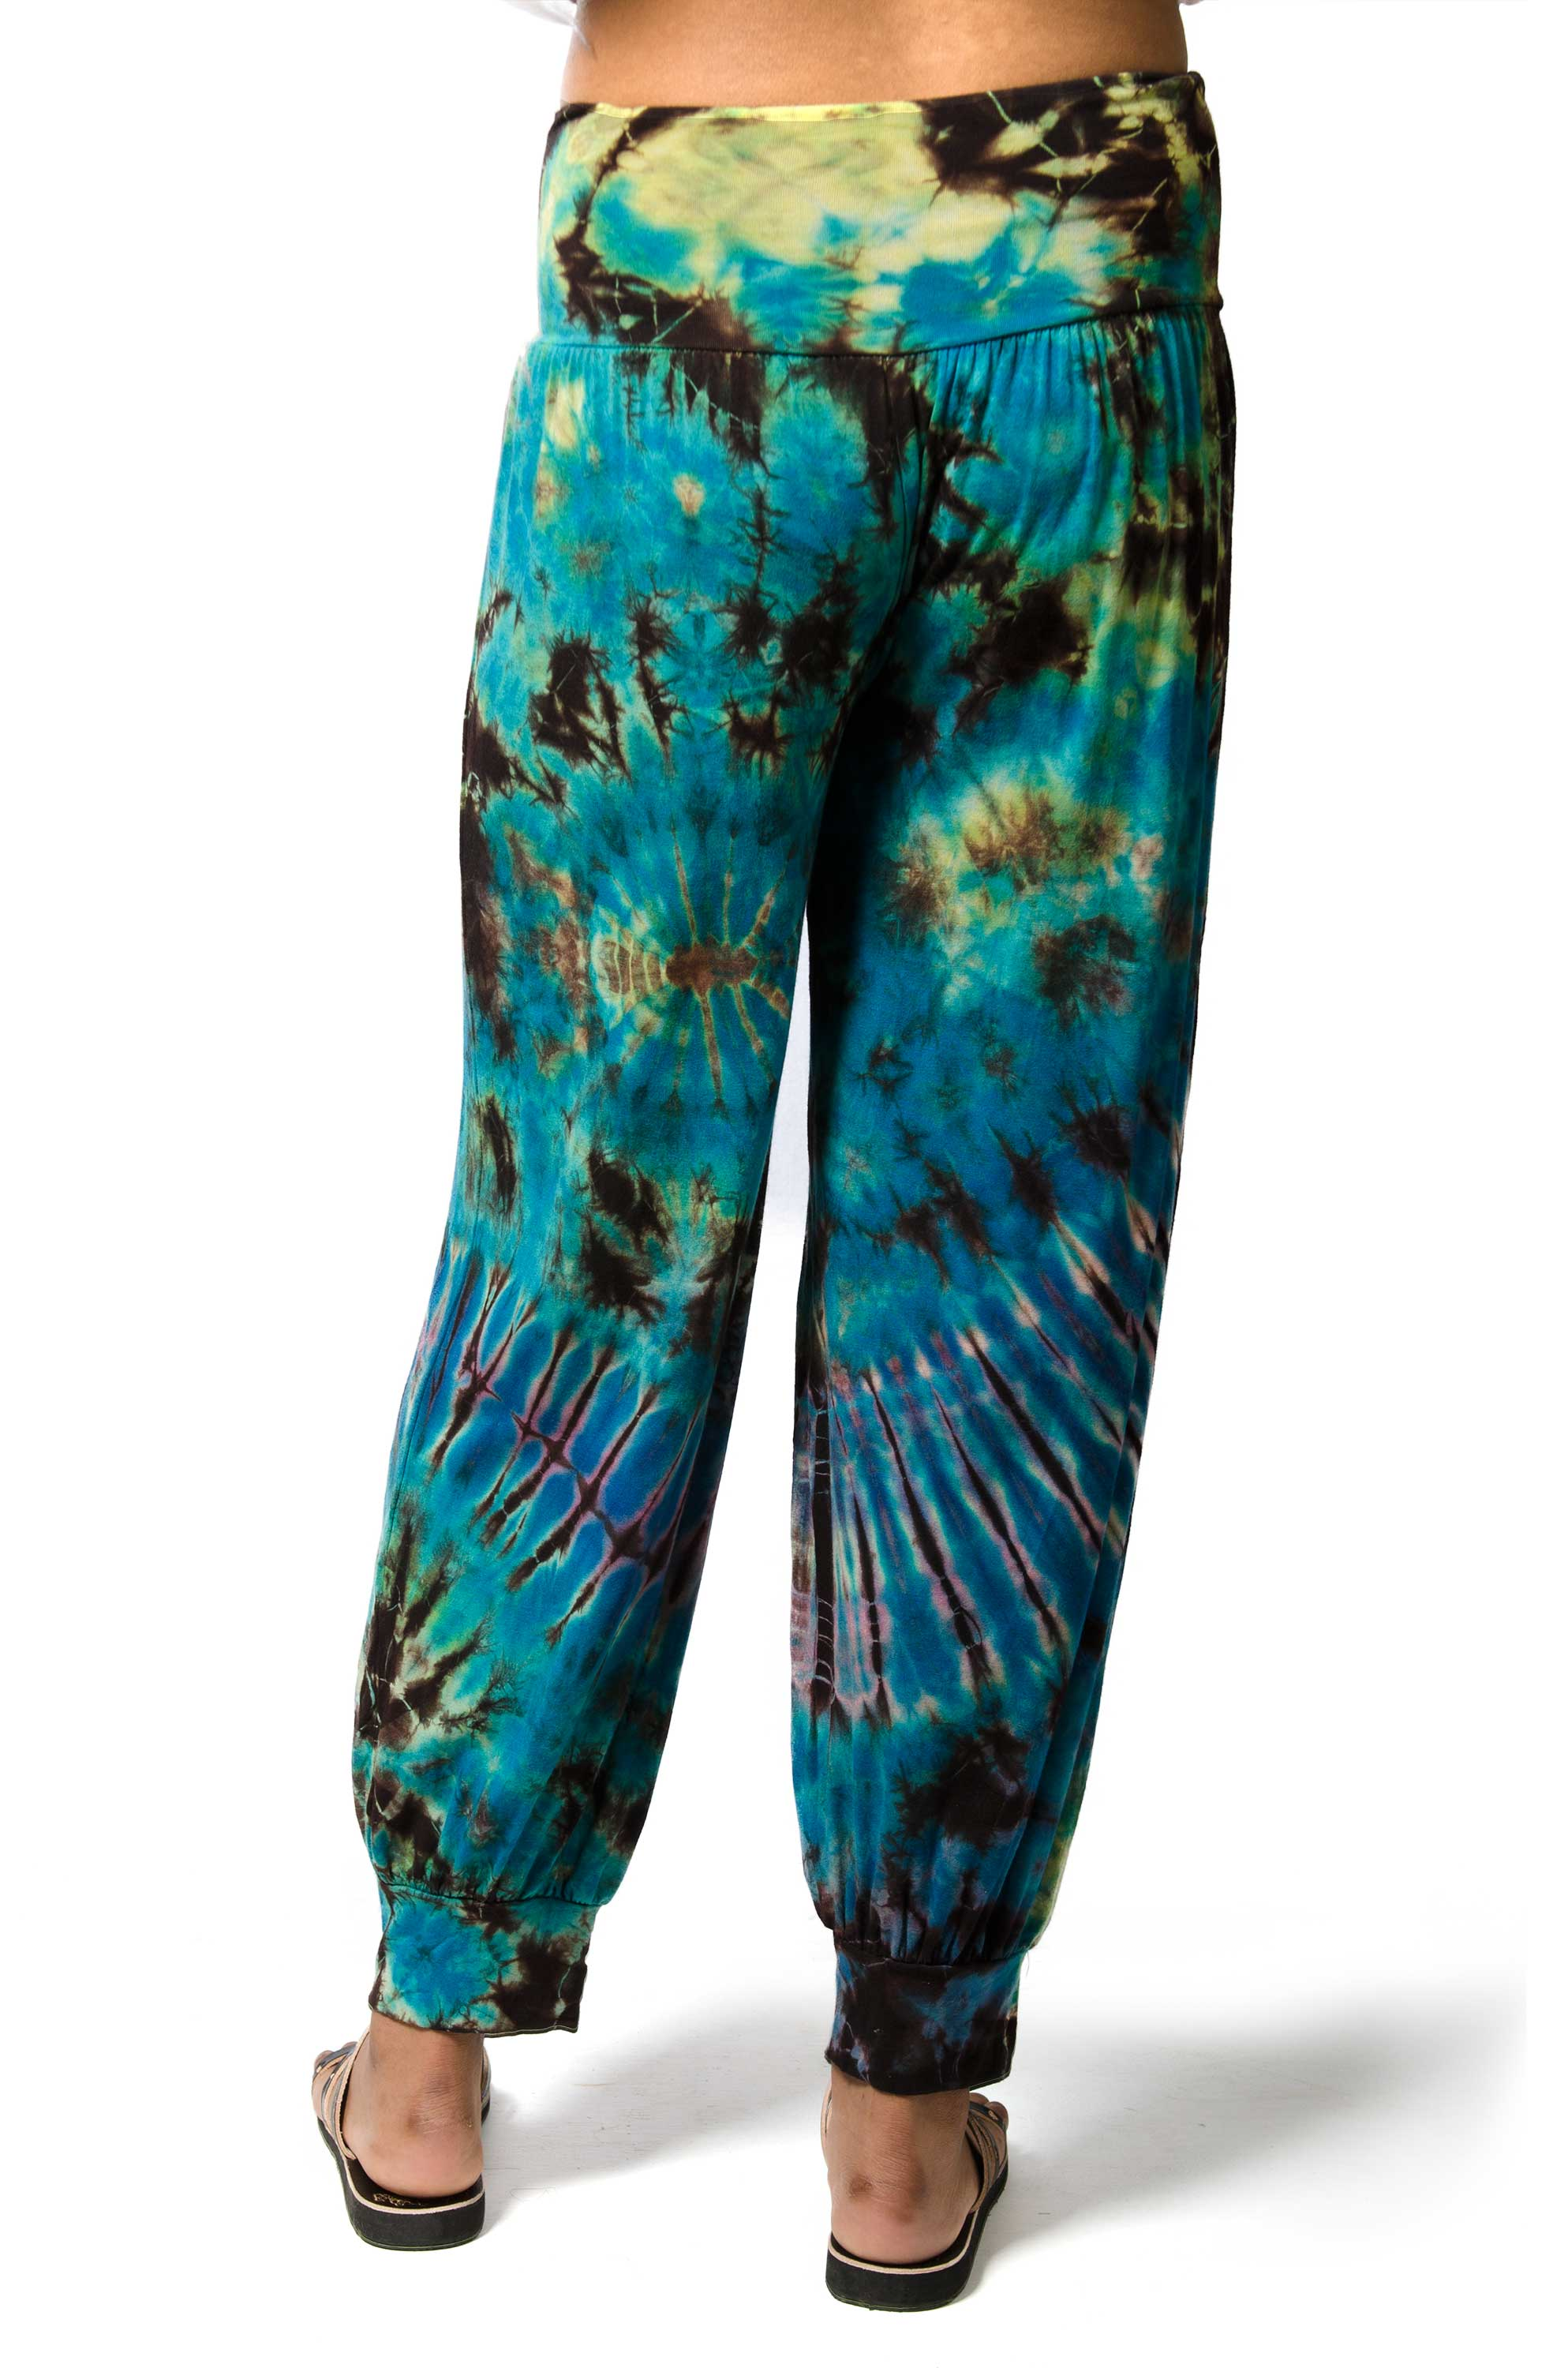 Harem Pants Hand Painted Tie Dye, back Blue